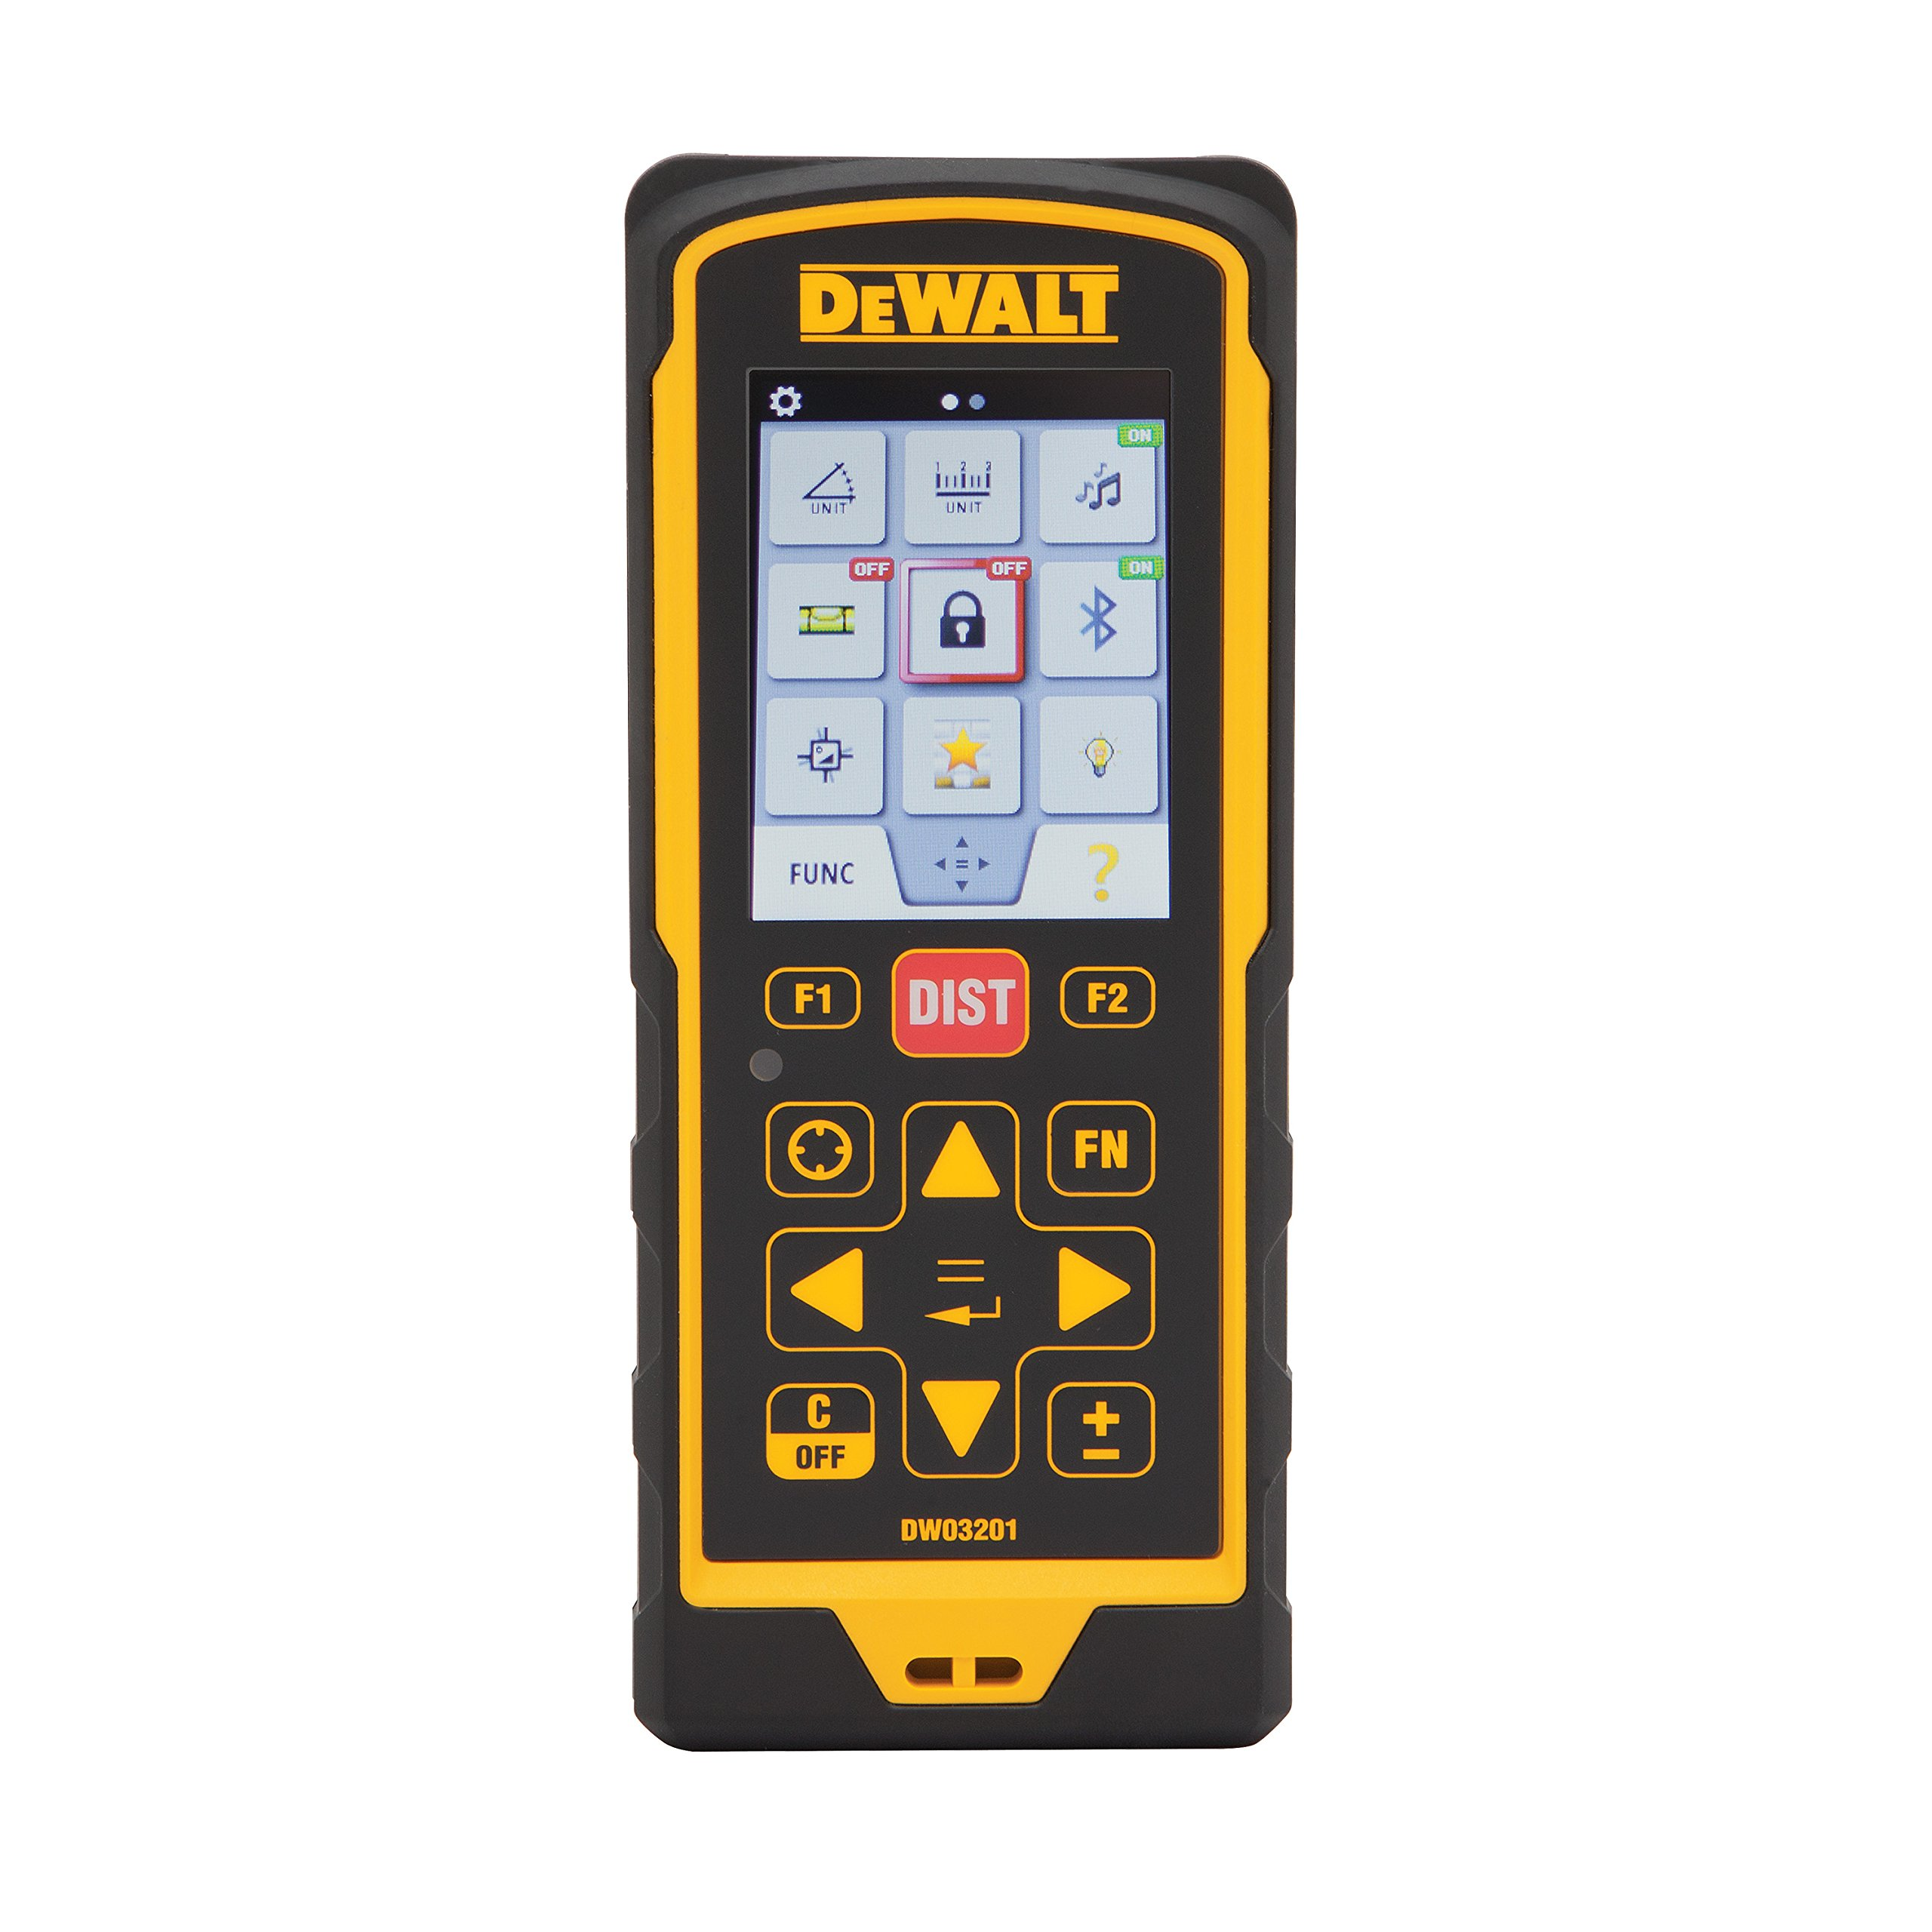 DEWALT DW03201 660' Laser Distance Measurer